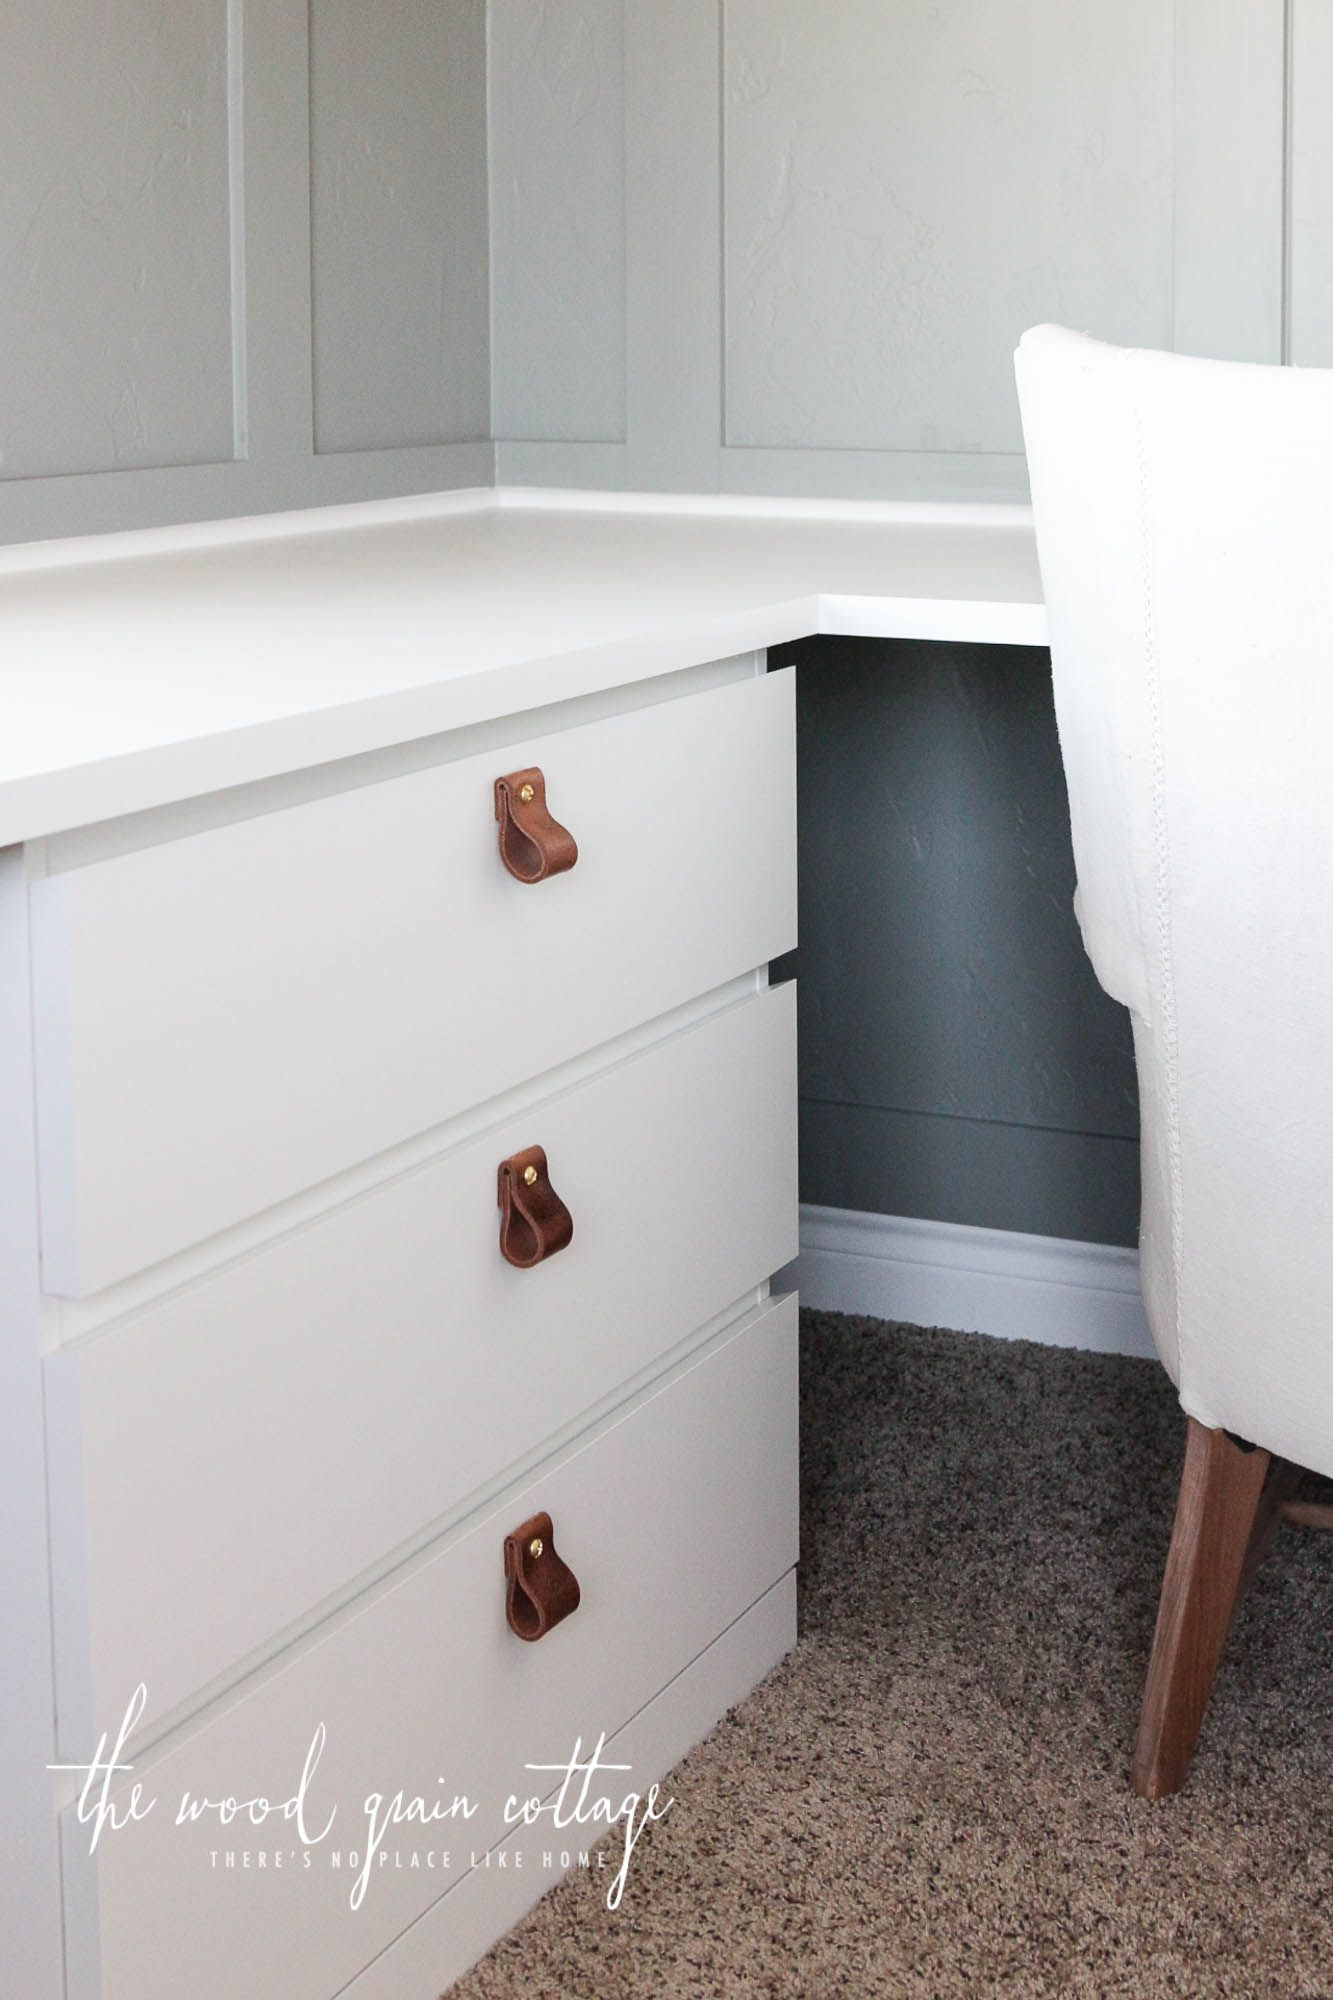 Diy Leather Pulls By The Wood Grain Cottage